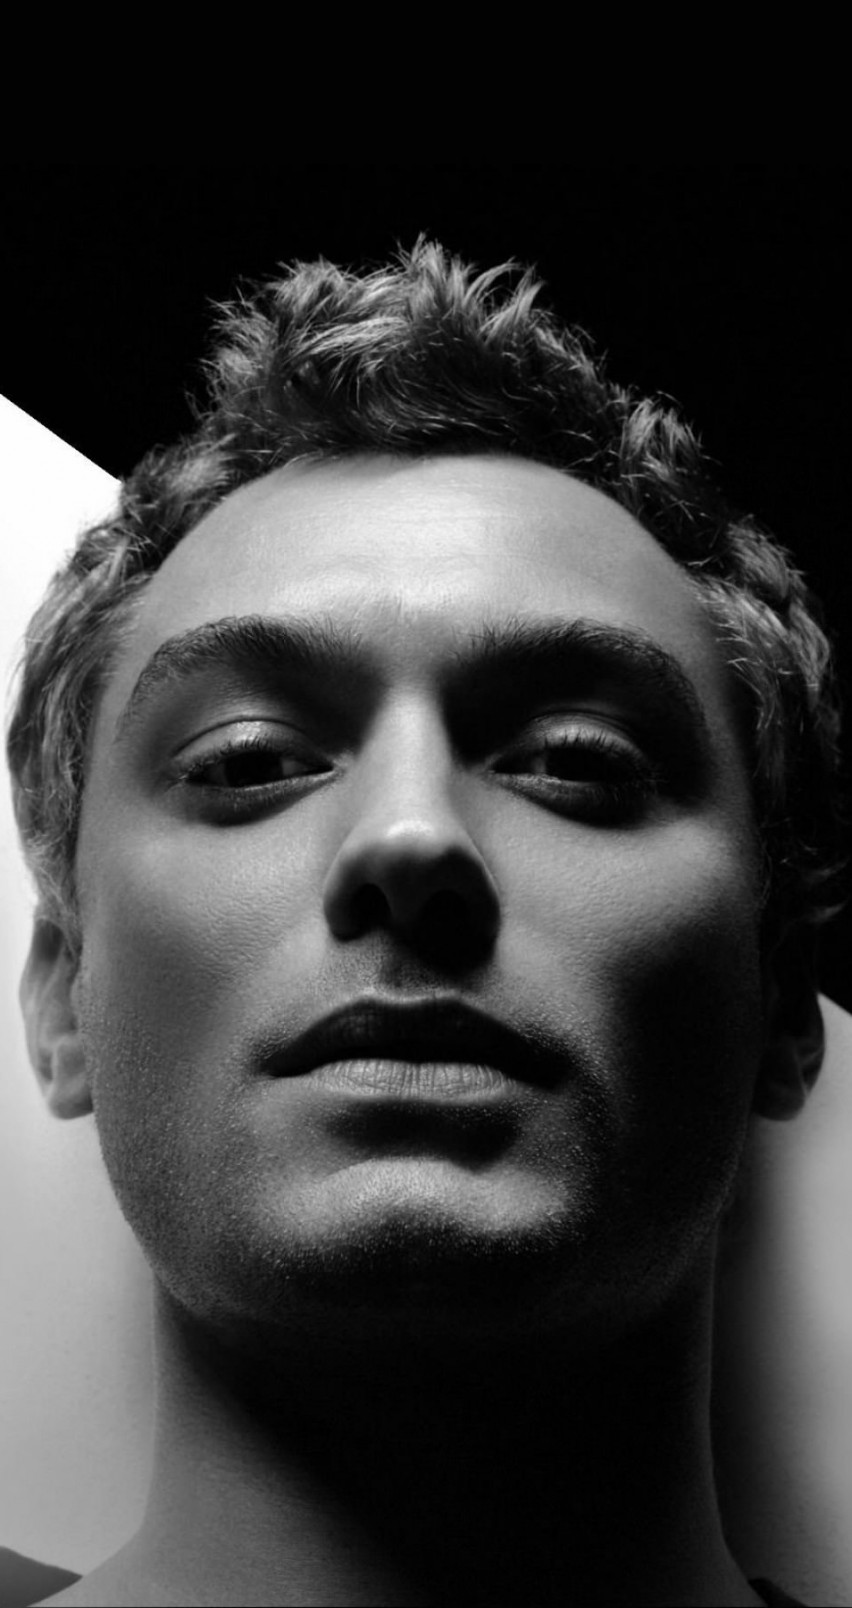 Jude Law Black & White Portrait Wallpaper for Apple iPhone 6 / 6s